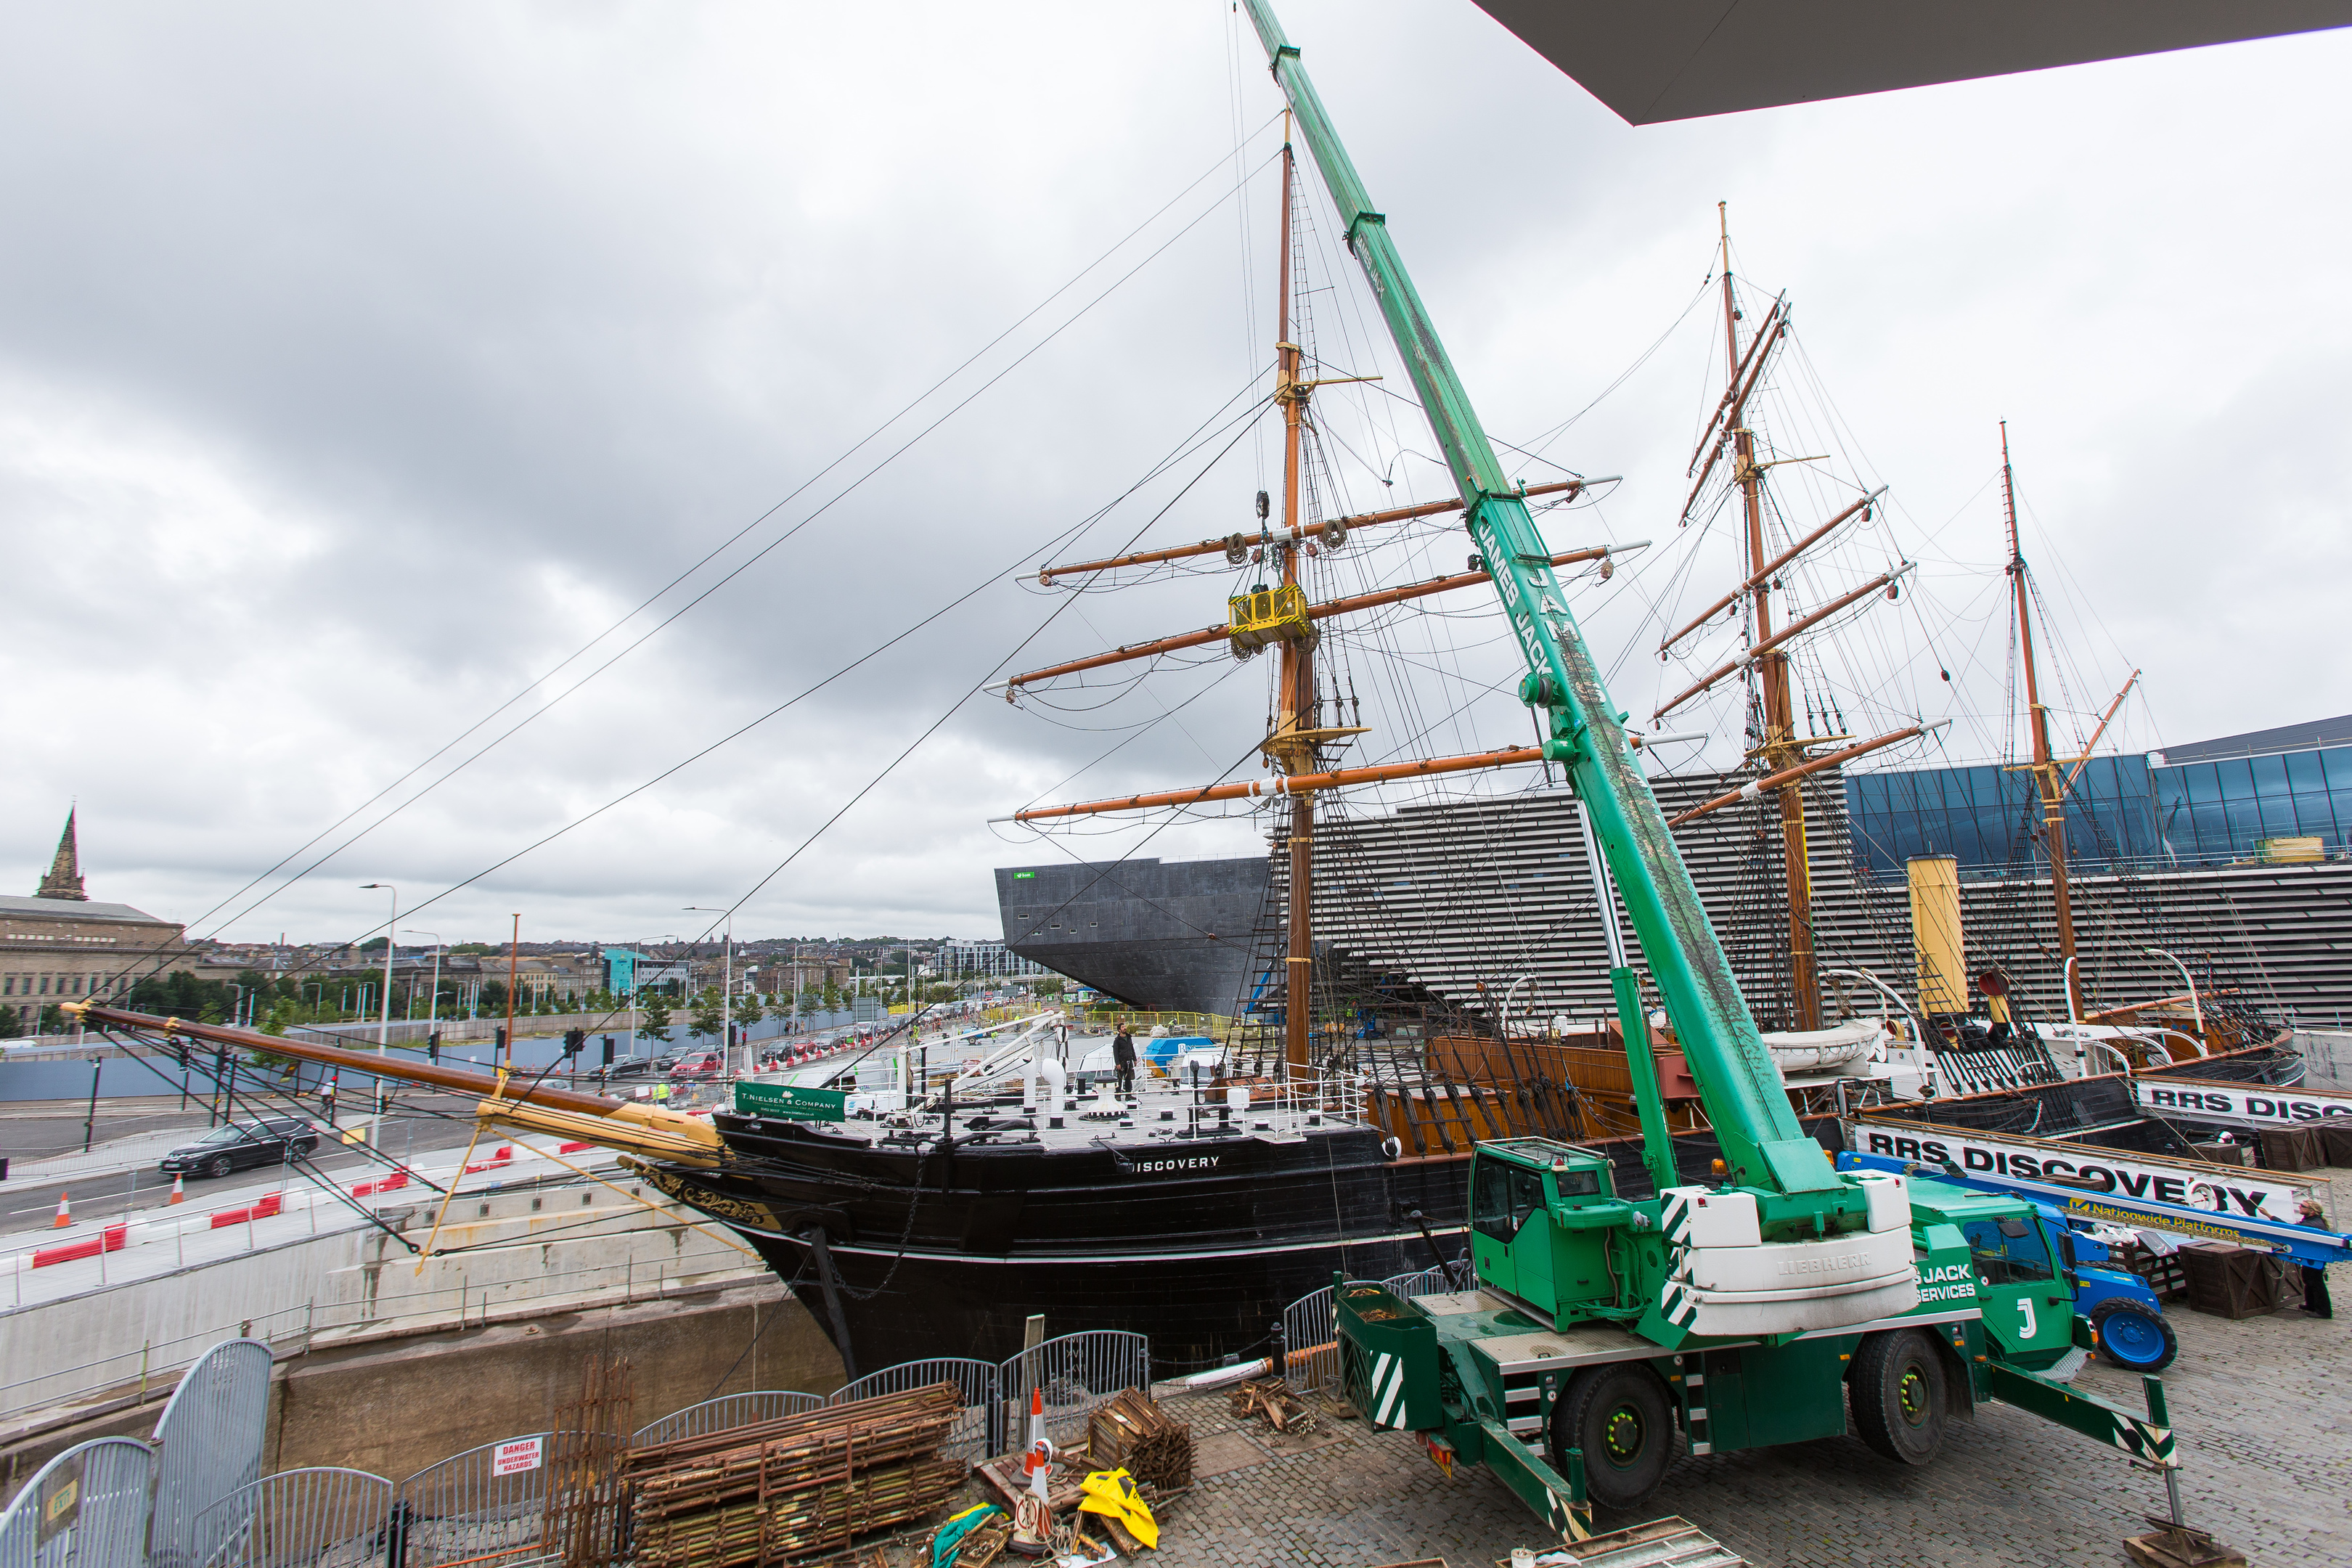 New masts being fitted for the refurbishment of the RRS Discovery.